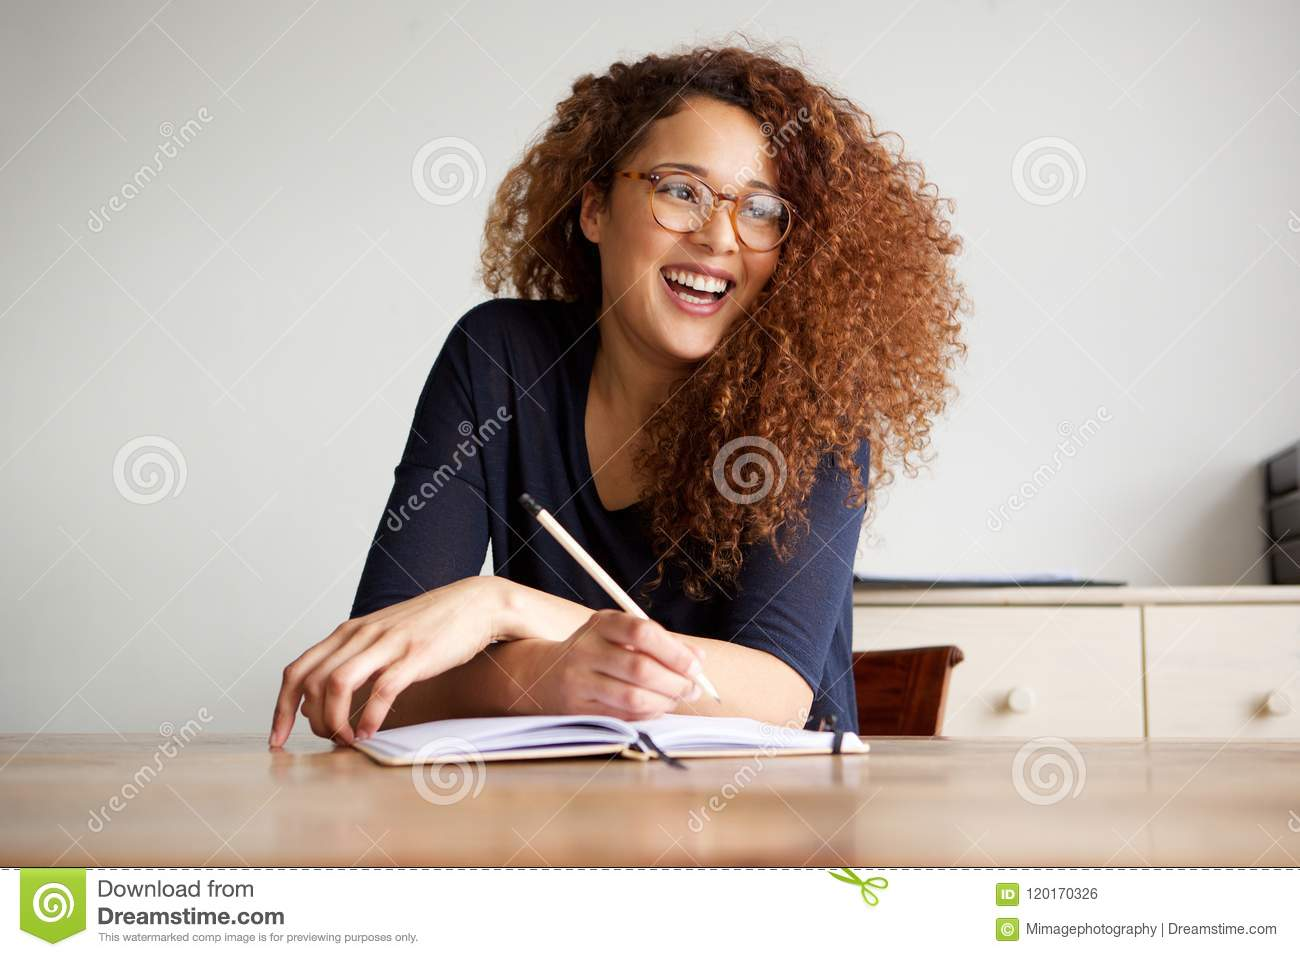 Happy female college student sitting at desk writing in book